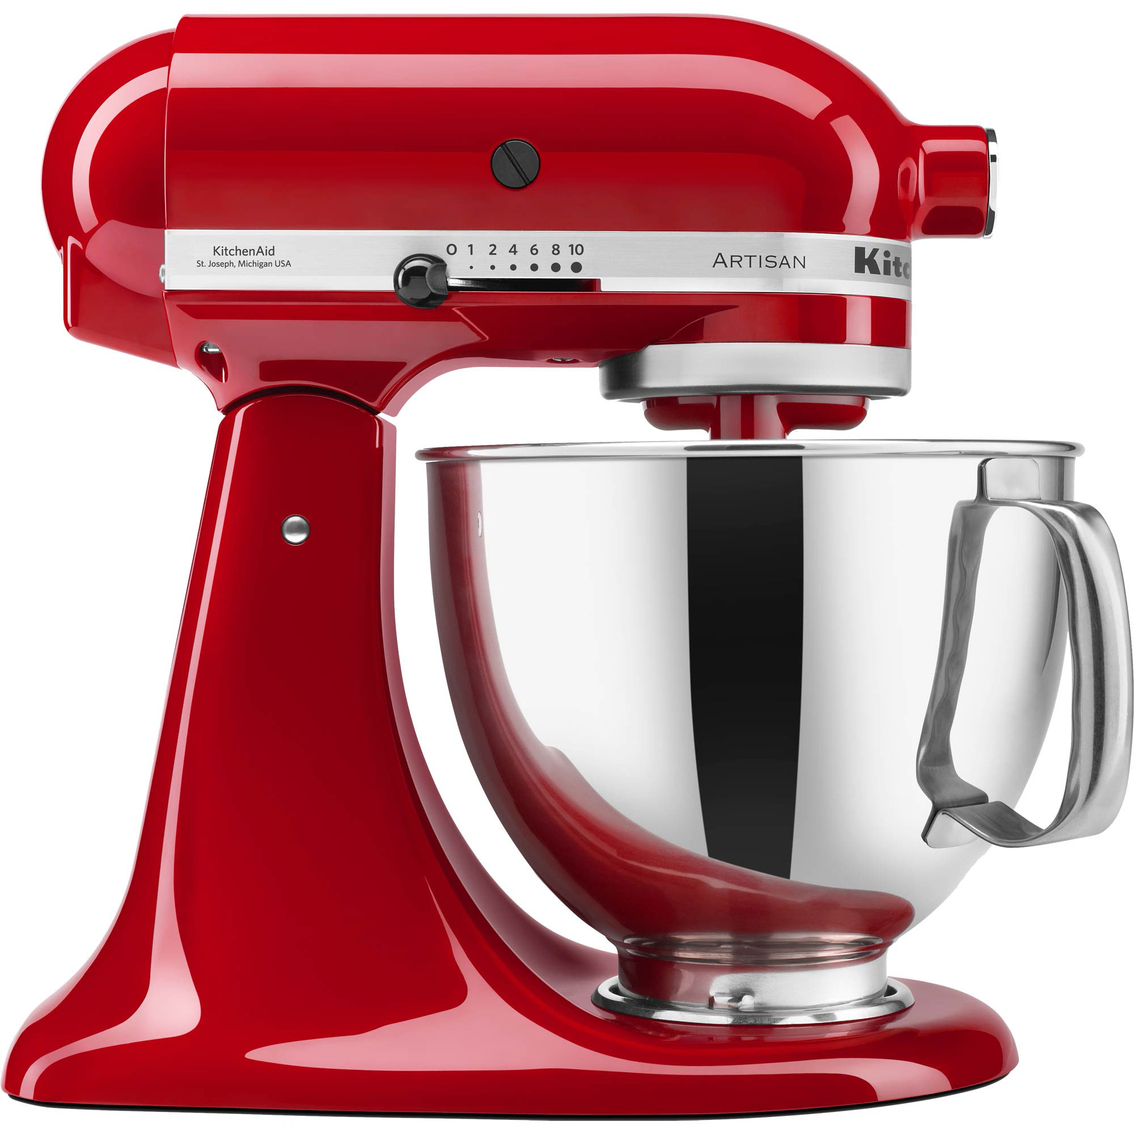 Kitchenaid Artisan Series Stand Mixer | Stand Mixers | Home ...